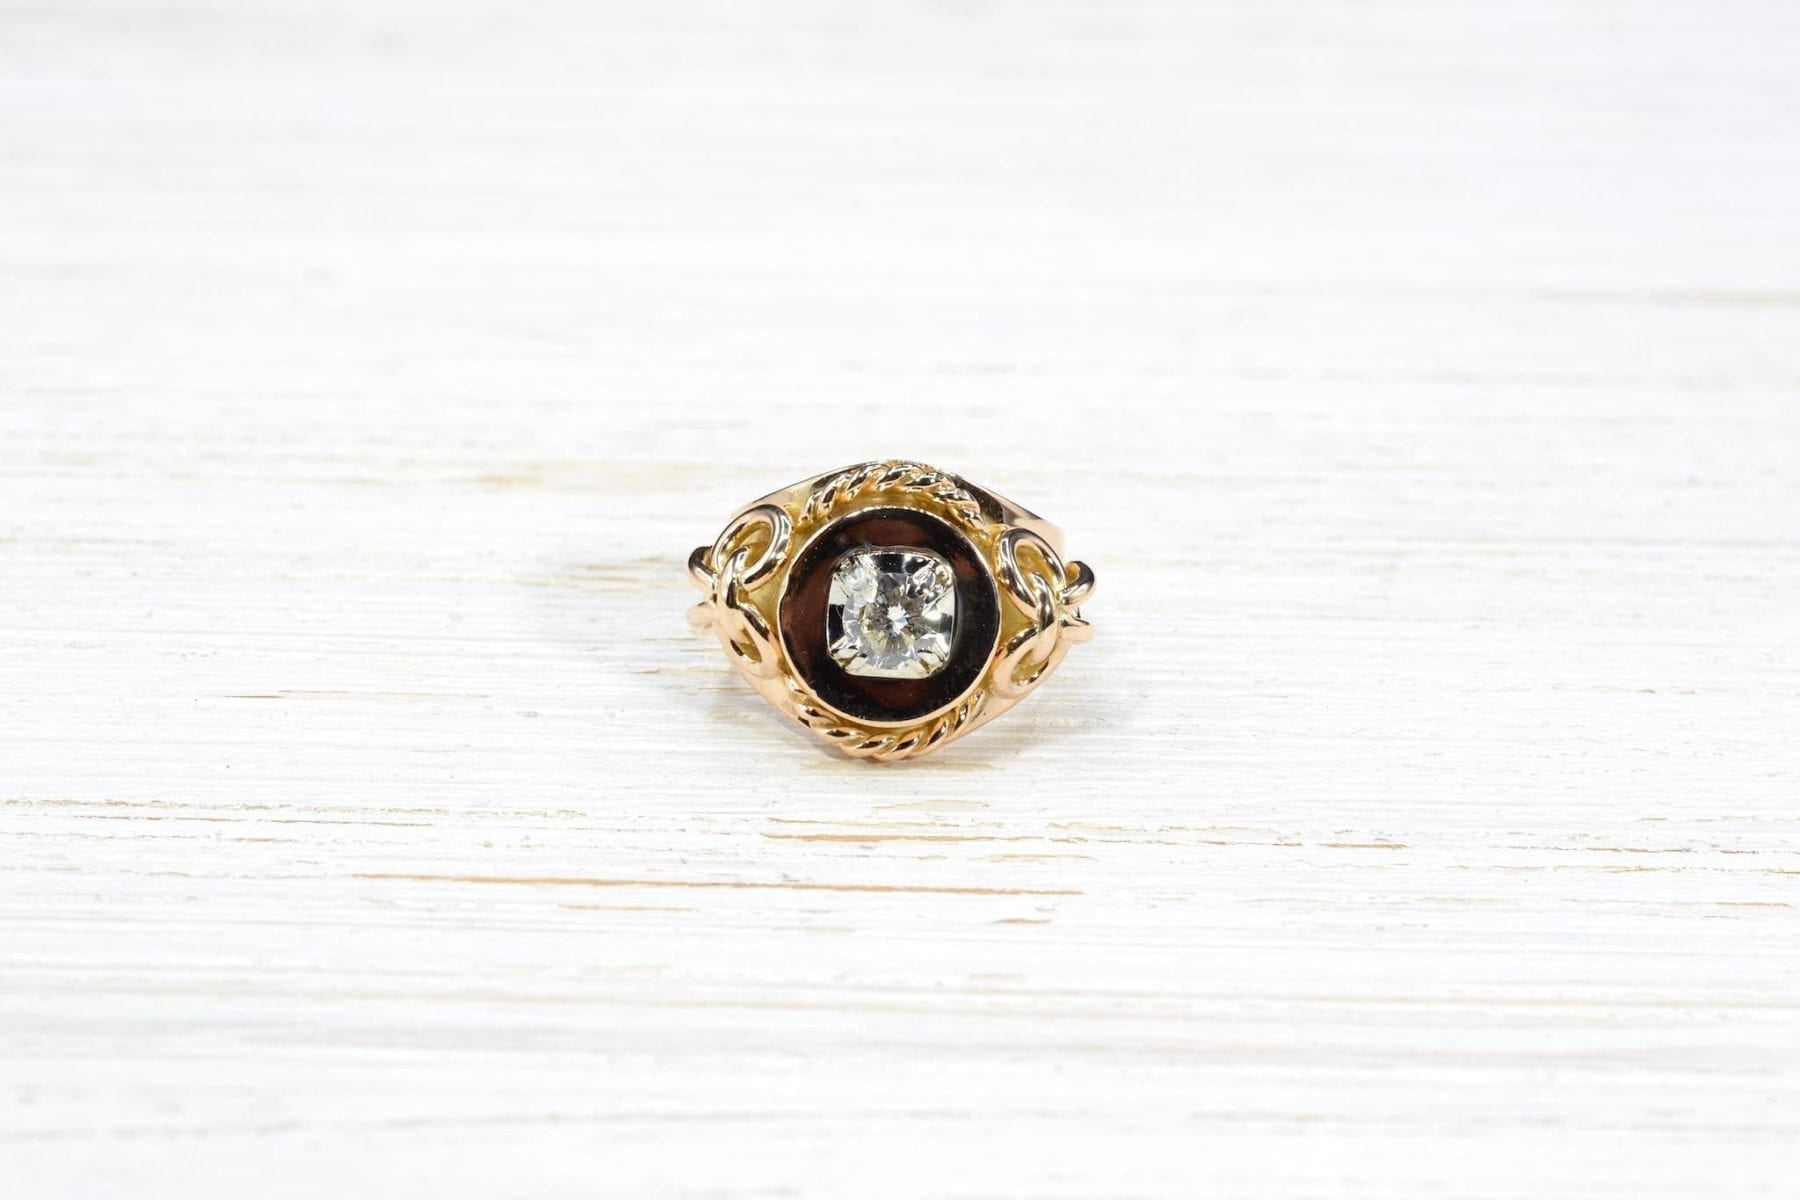 Antique gold diamond ring